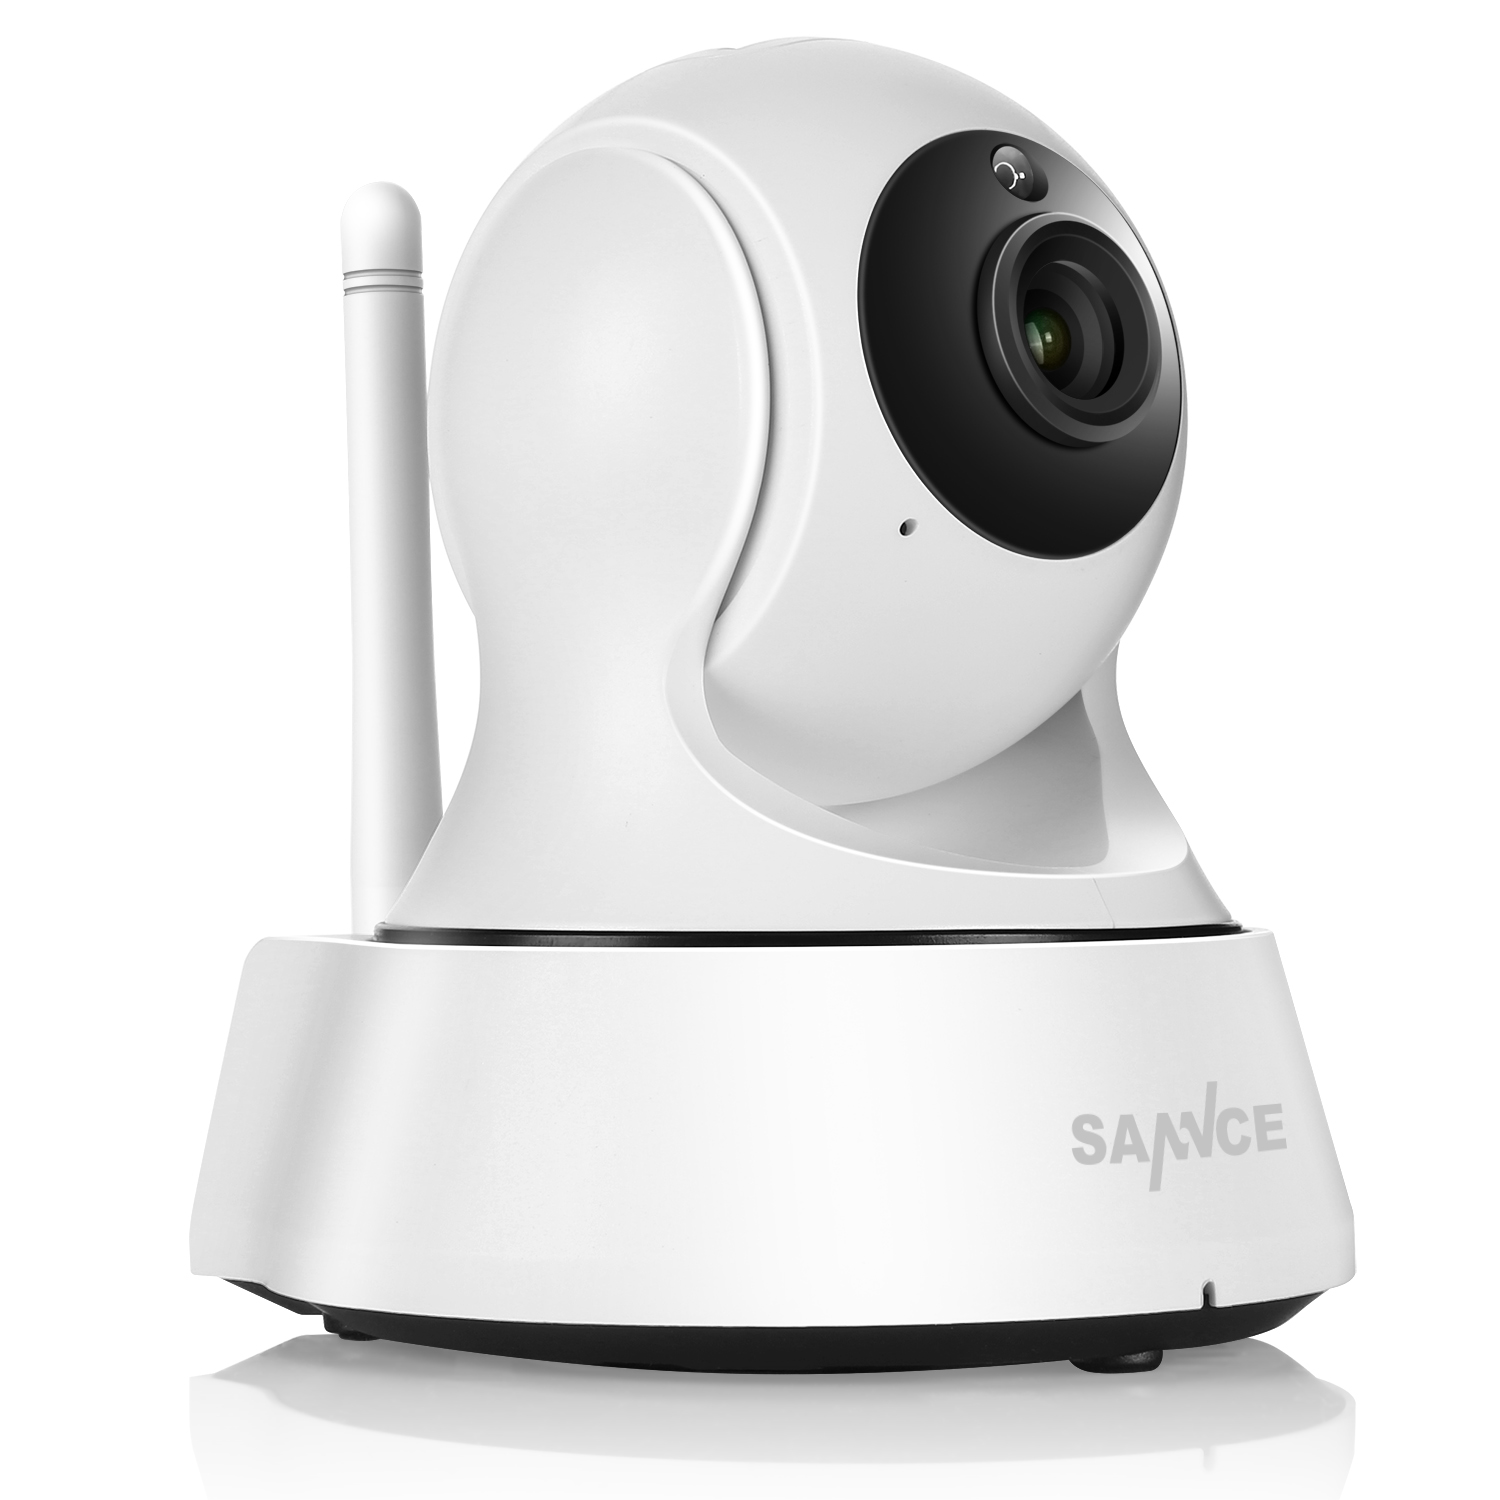 SANNCE Home Security IP Camera Wi-Fi Wireless Mini Telecamera di Sorveglianza di Rete Wifi 720 P Visione Notturna Cctv Baby Monitor